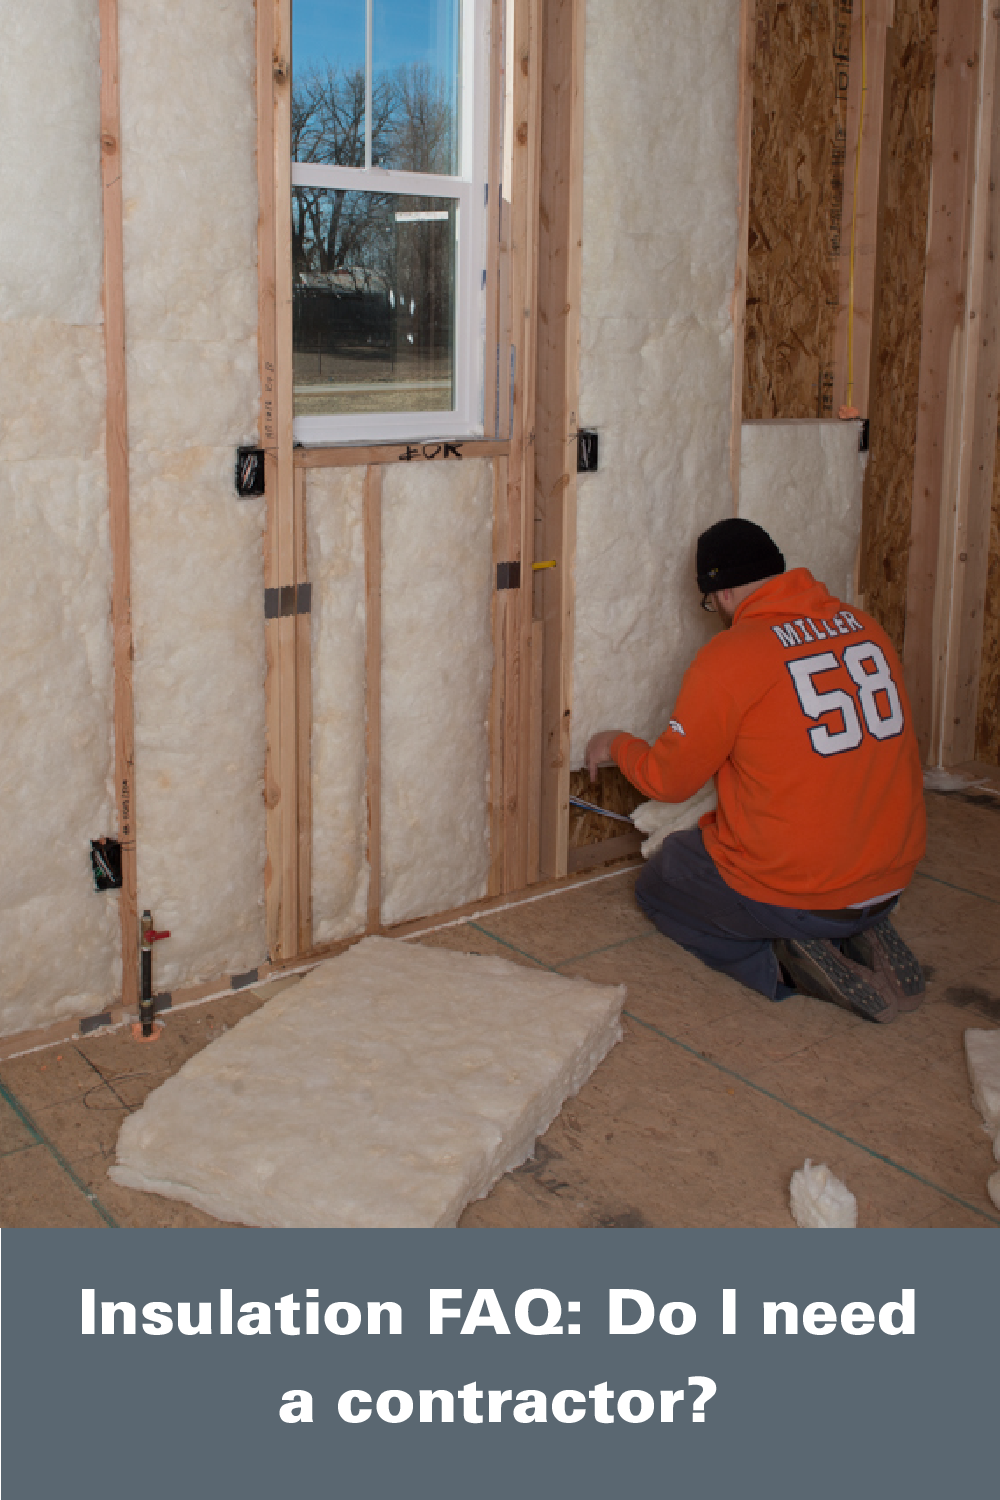 Do I Need A Contractor No Most Home Insulation Projects Can Be Easily Completed By Homeowners Jminsula Contractors Home Insulation Installing Insulation